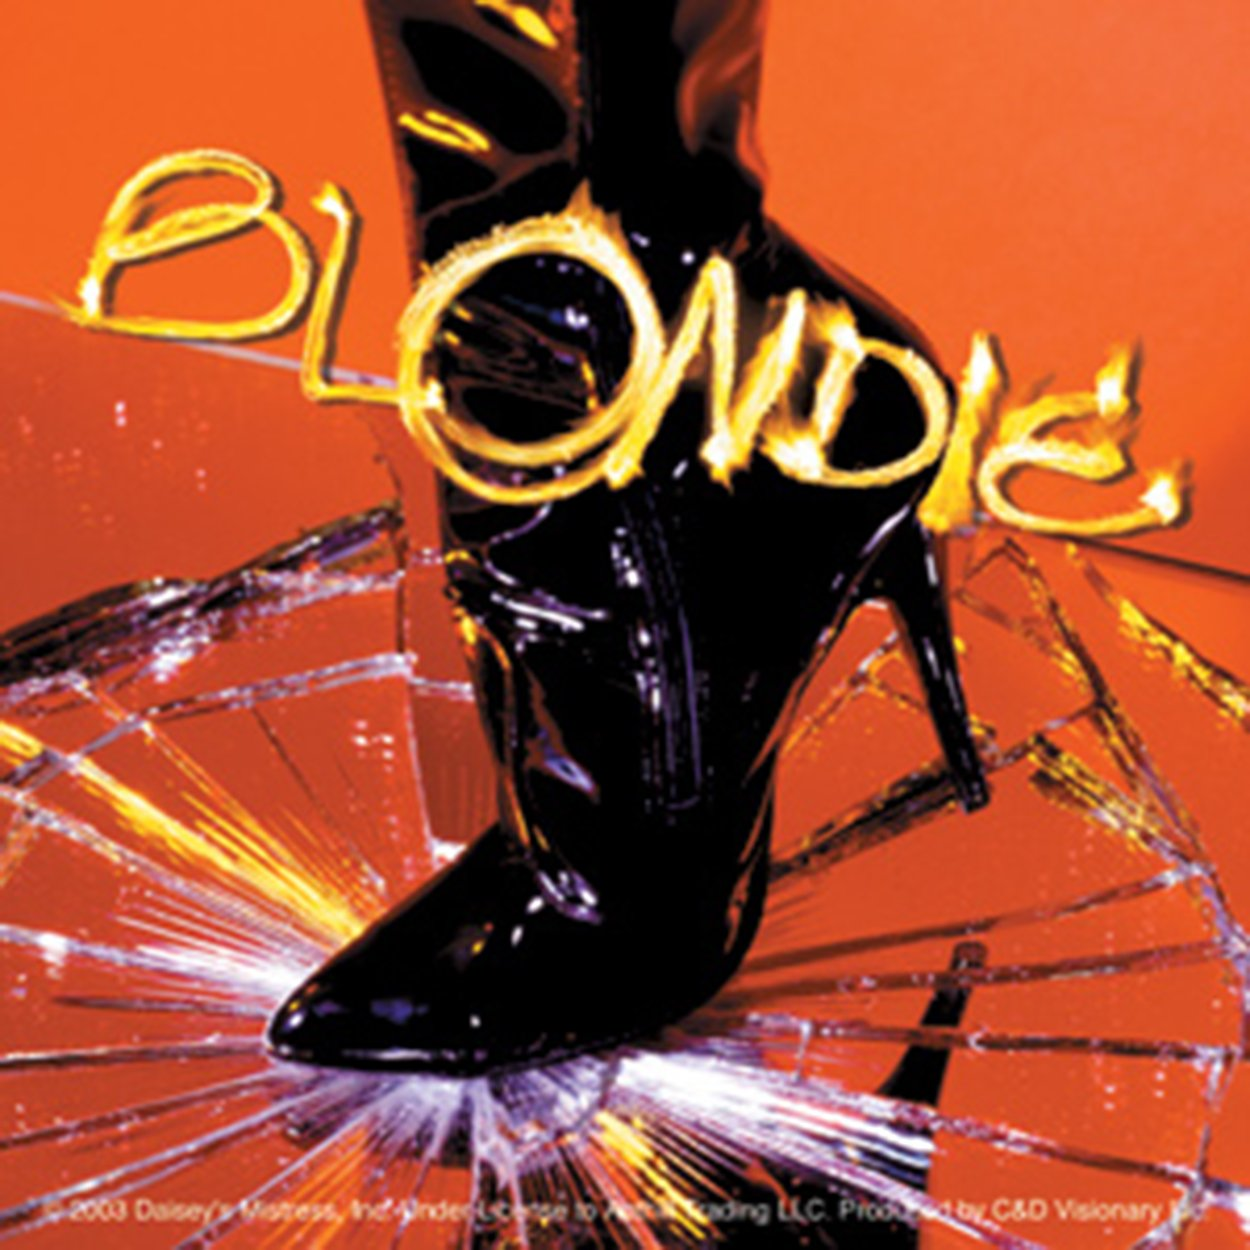 S-2935 Licenses Products Blondie Boot Sticker C/&D Visionary Inc